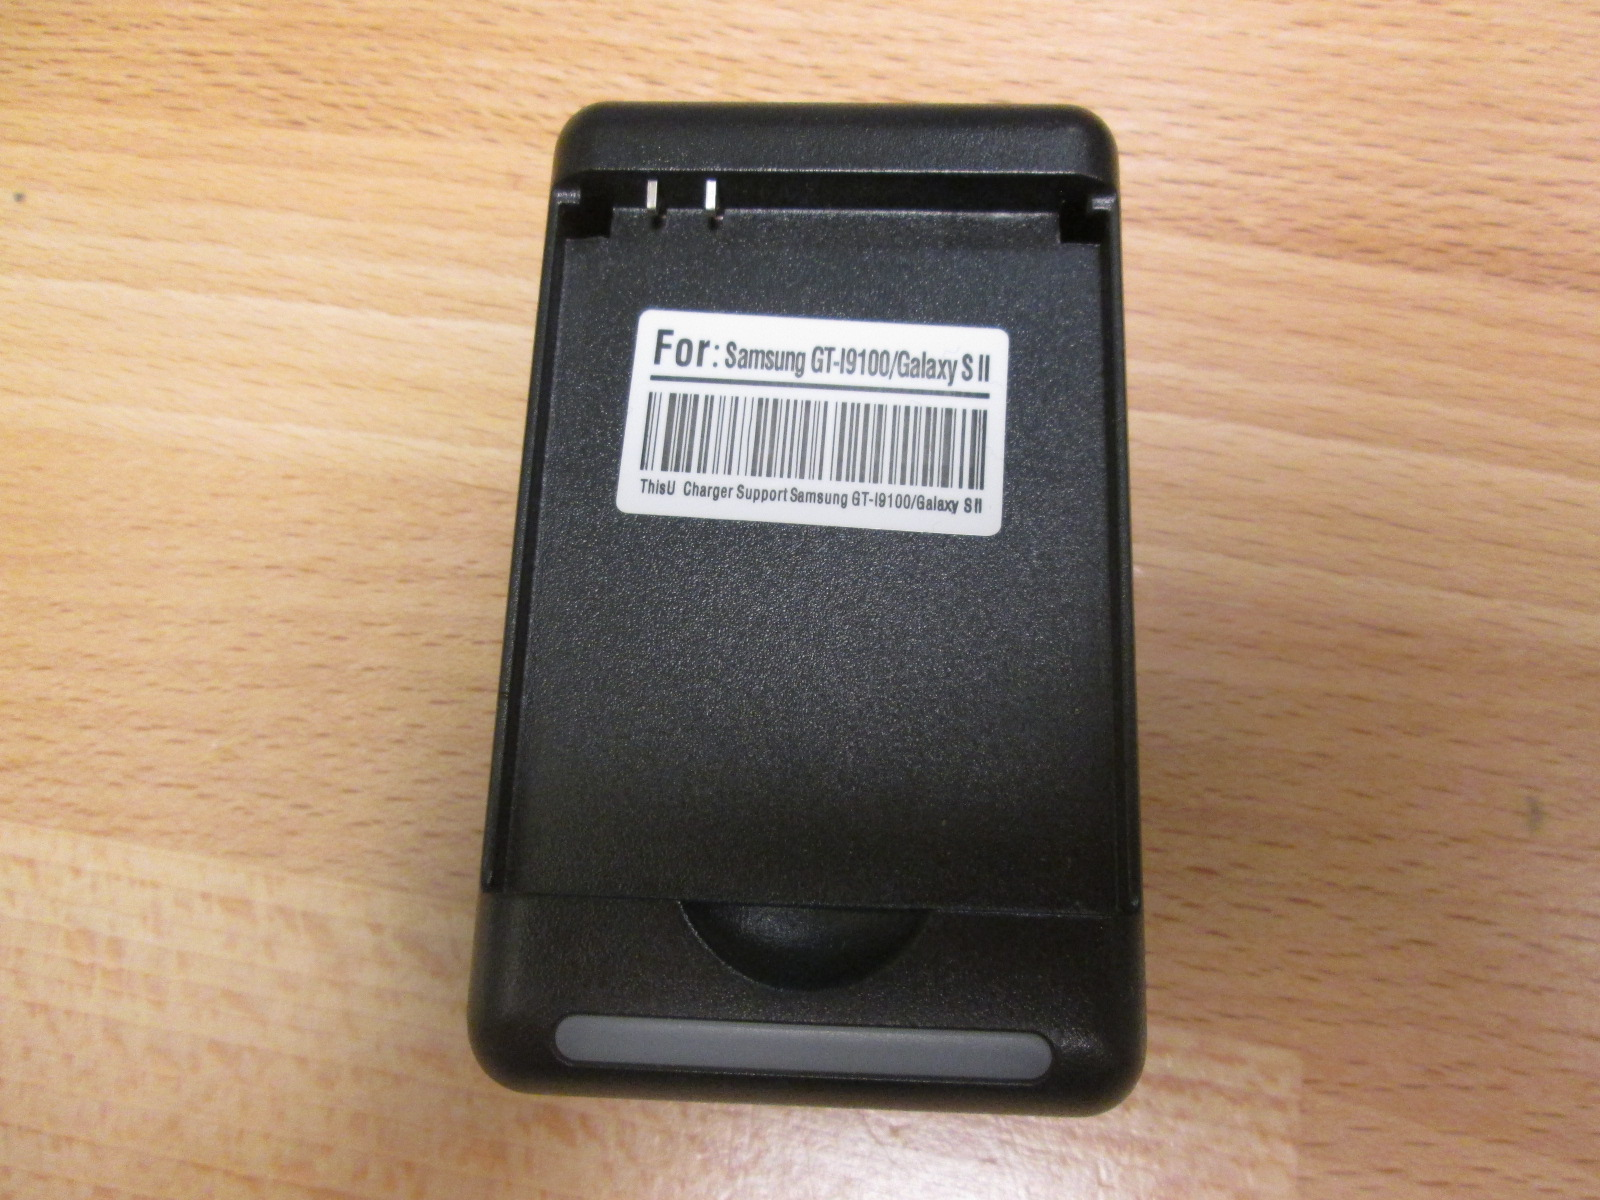 Travel Charger For Samsung GT-I9100 Galaxy S II